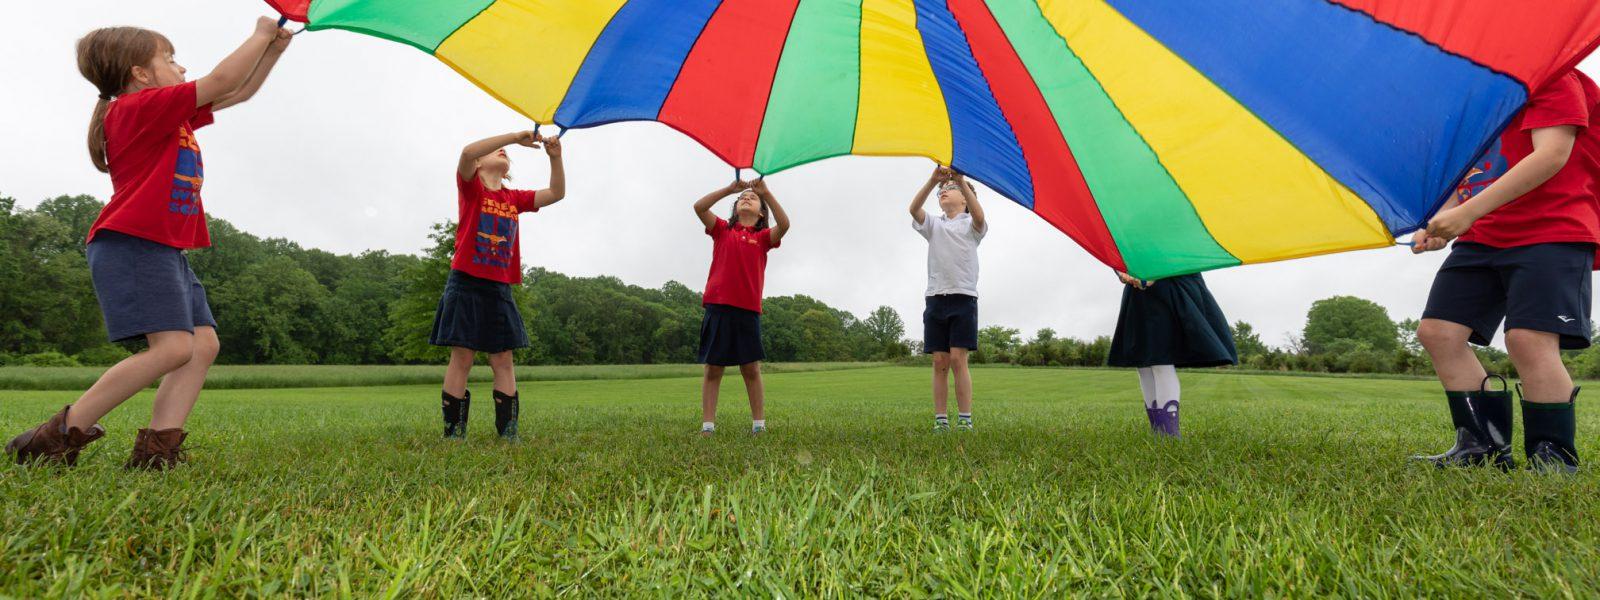 Elementary students playing with a parachute outside